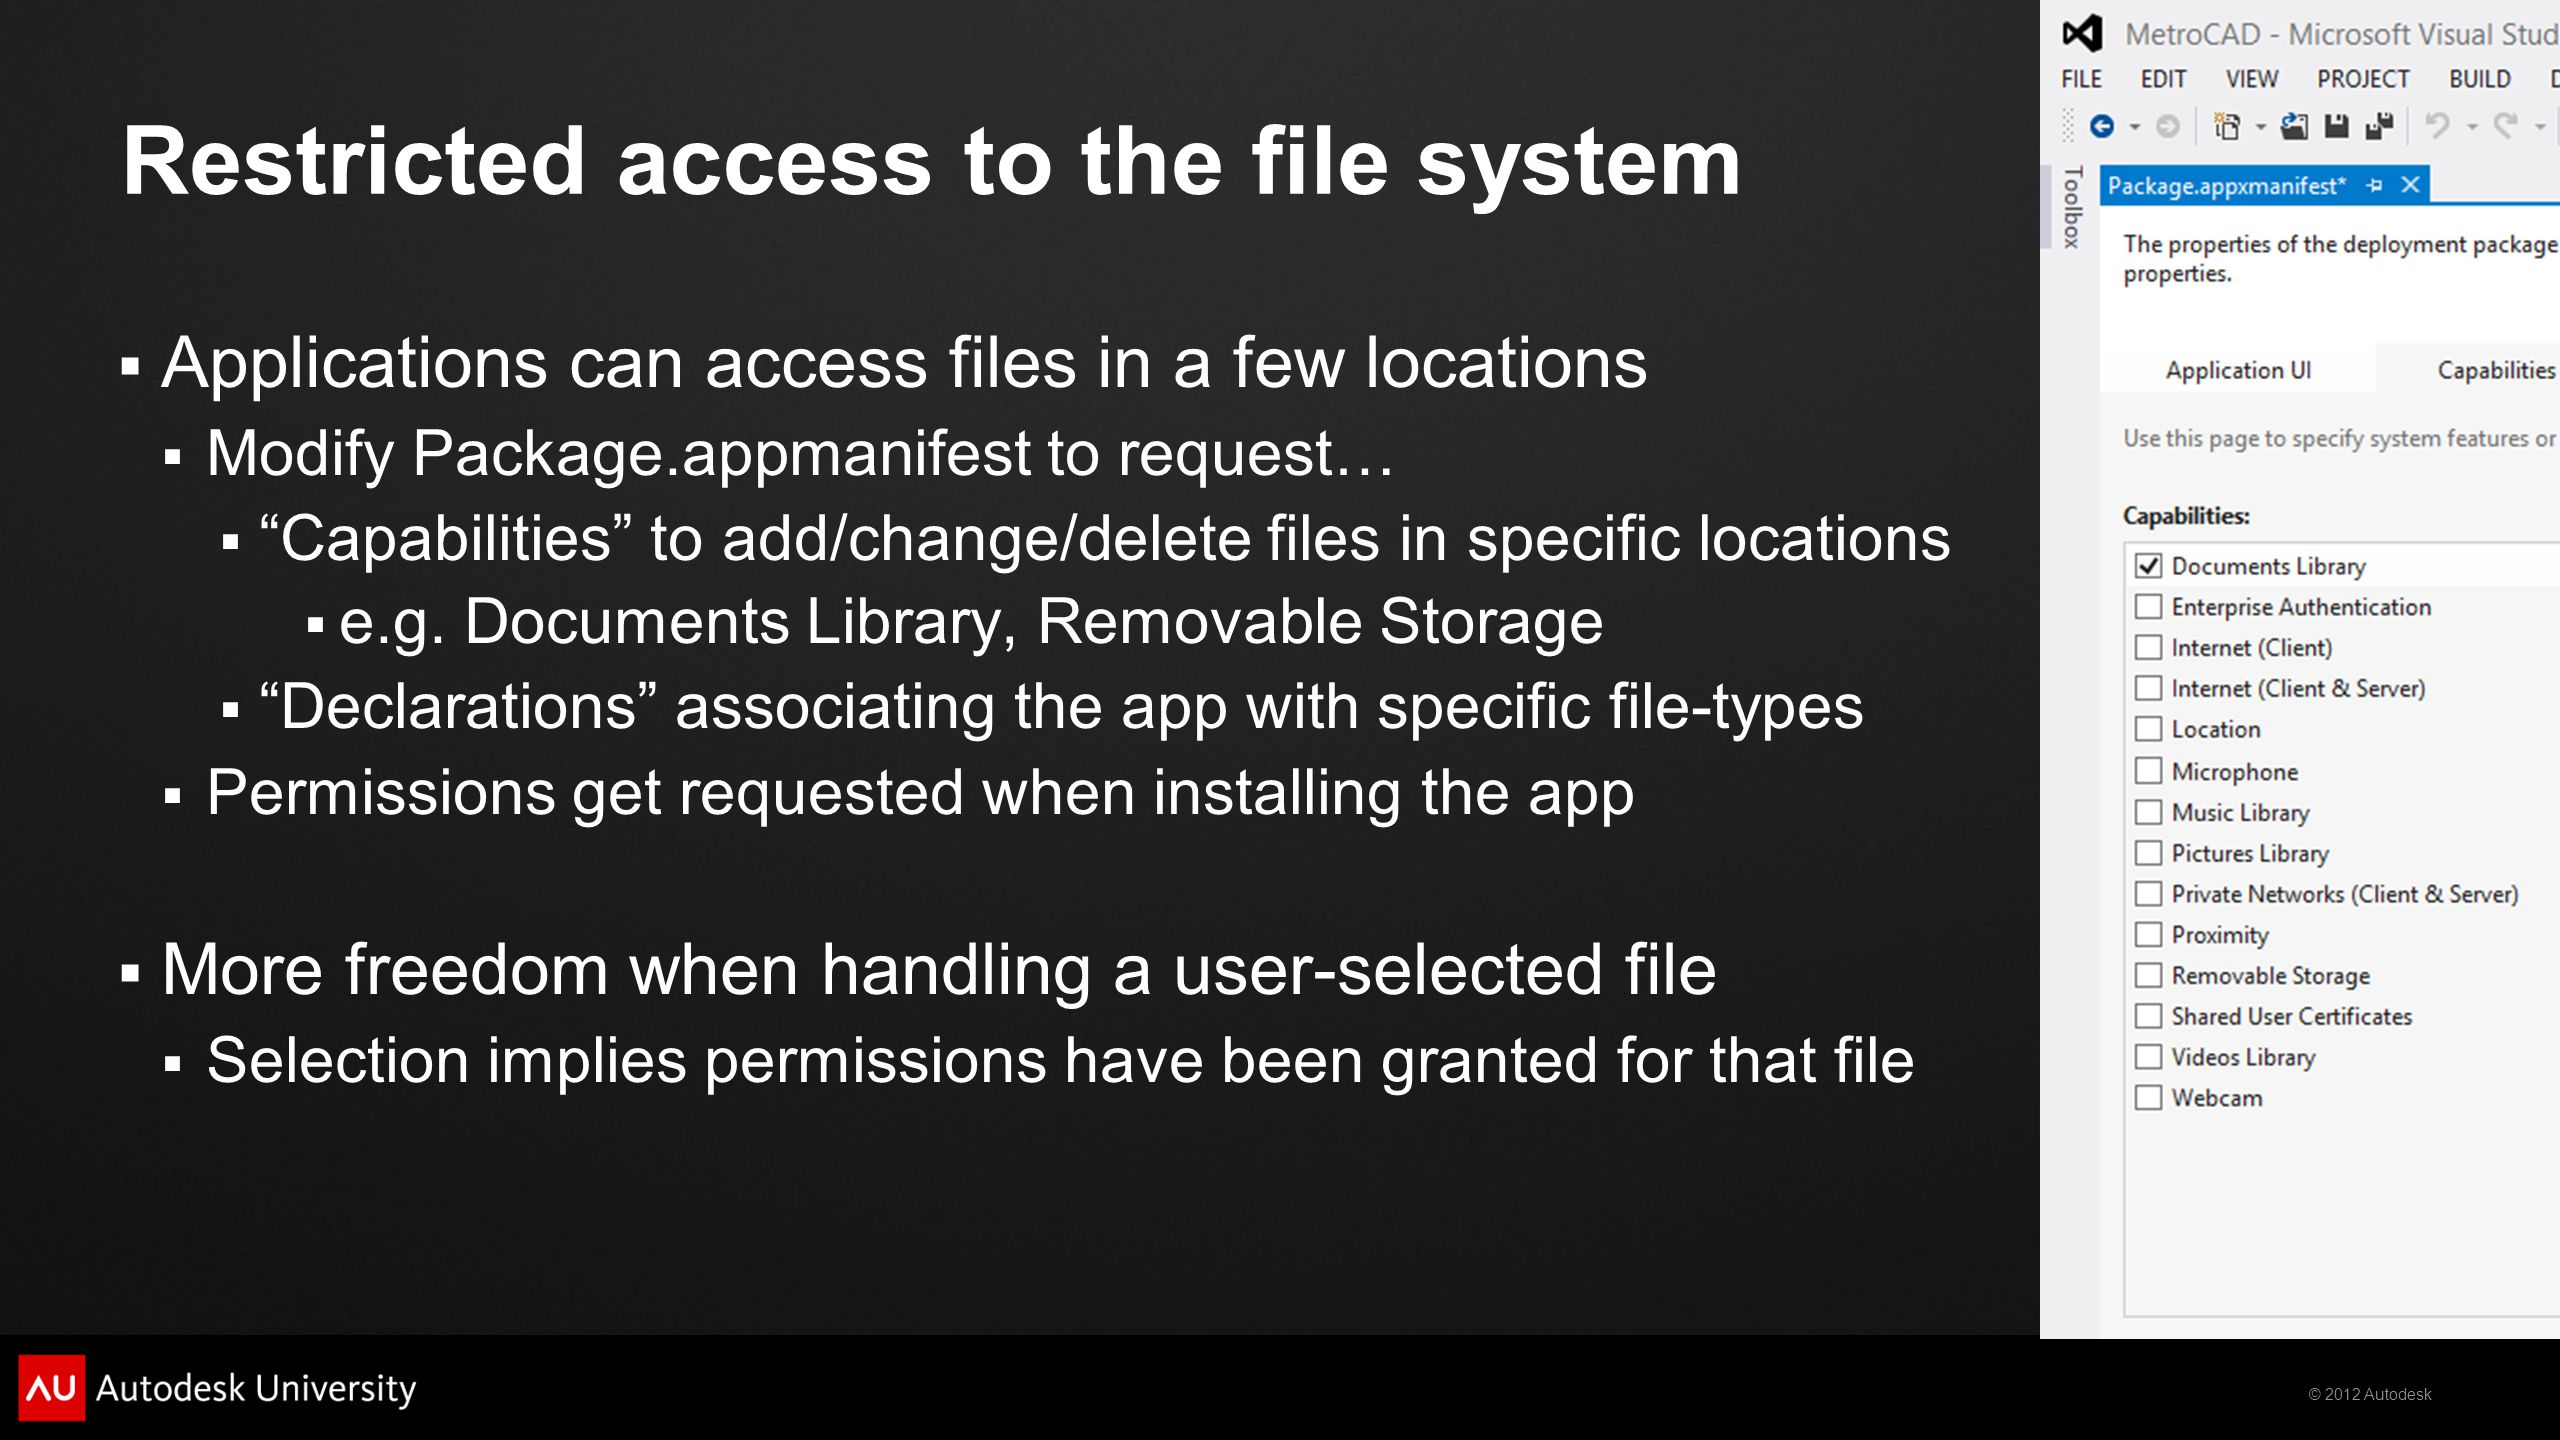 © 2012 Autodesk Restricted access to the file system Applications can access files in a few locations Modify Package.appmanifest to request… Capabilities to add/change/delete files in specific locations e.g.